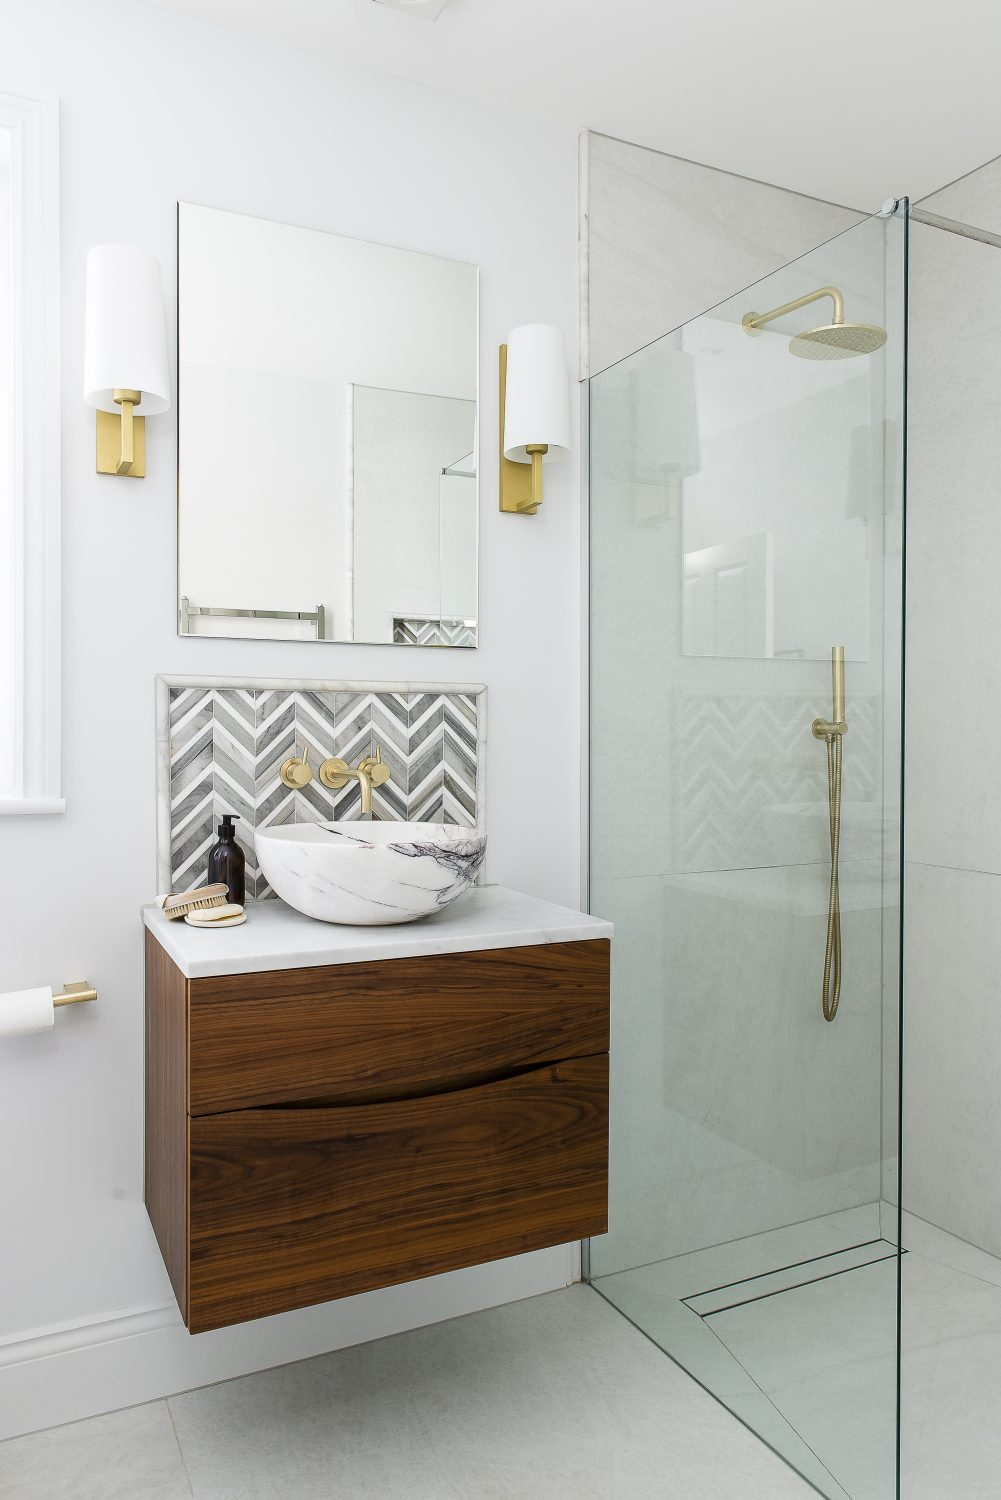 The master bedroom en suite features a Carrara marble bowl basin on top of a walnut wood floating cabinet, with small marble tiles from Mandarin Stone in a herringbone pattern as a splashback